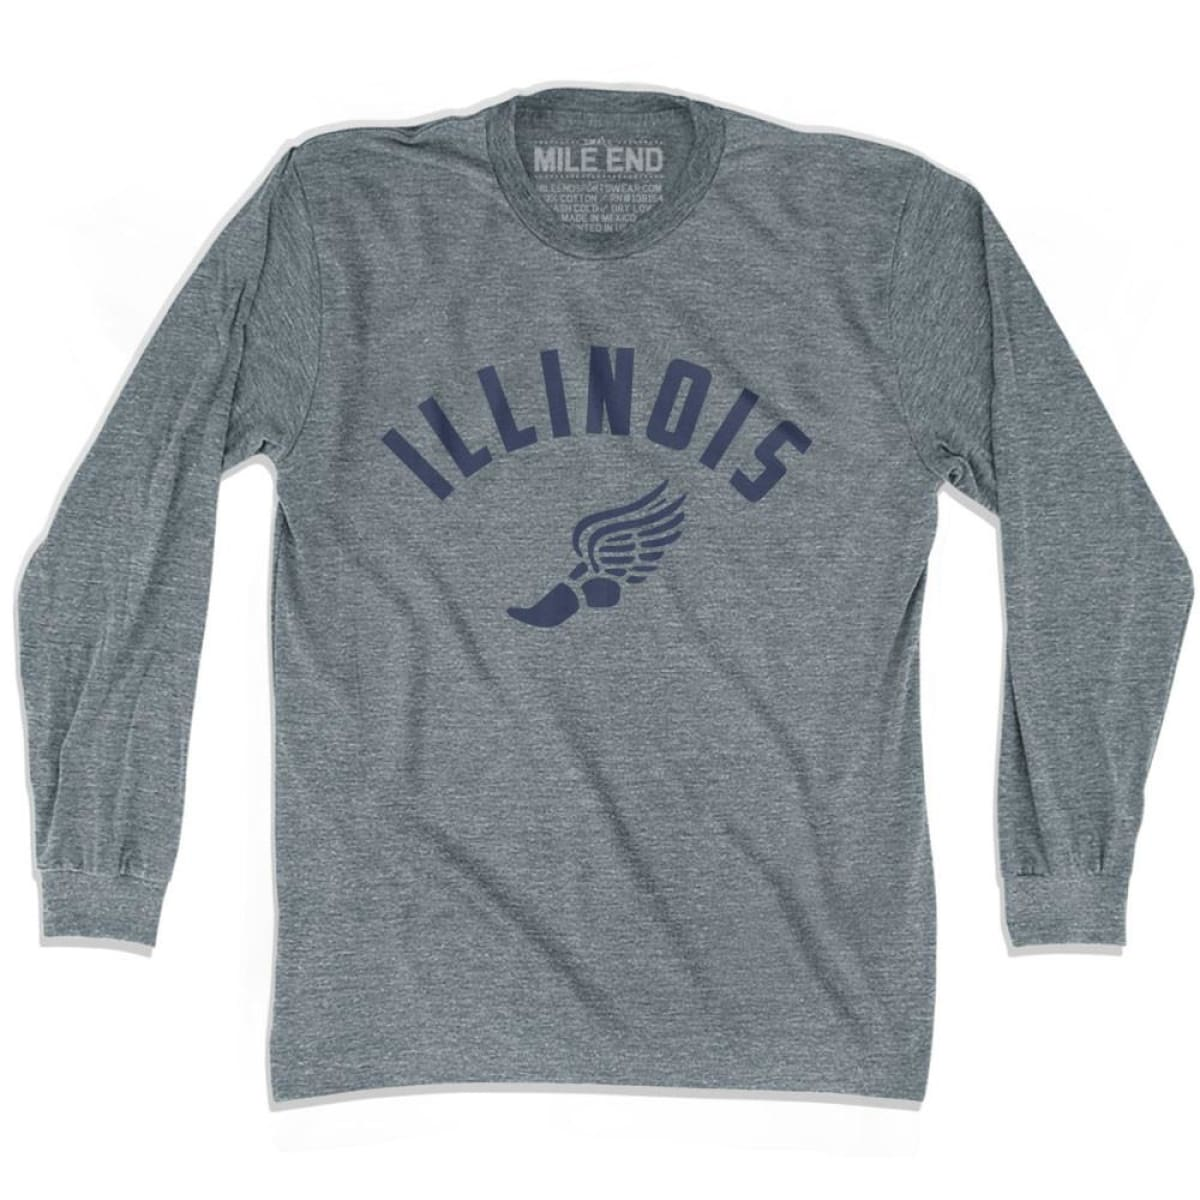 Illinois Track Long Sleeve T-shirt - Athletic Grey / Adult X-Small - Mile End Track